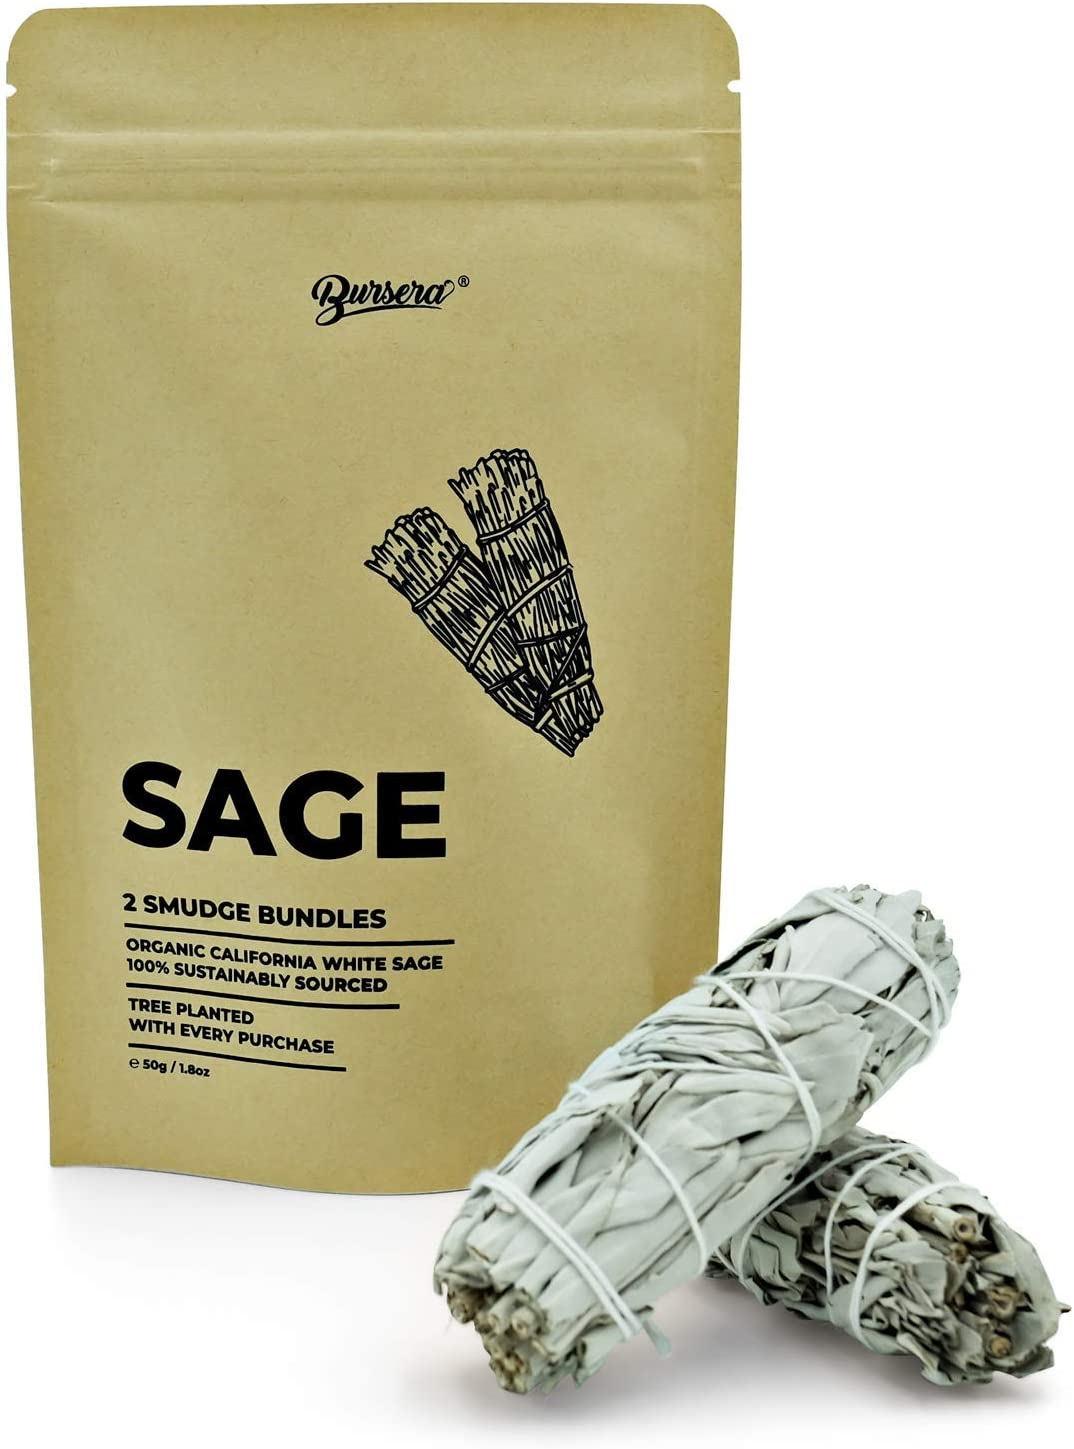 Bursera Sage Sticks, Tree Planted with Every Order, Sustainable Organic California White Sage Smudge Sticks, Sage Smudge Kit, 2 Dried Sage Bundles for Smudging